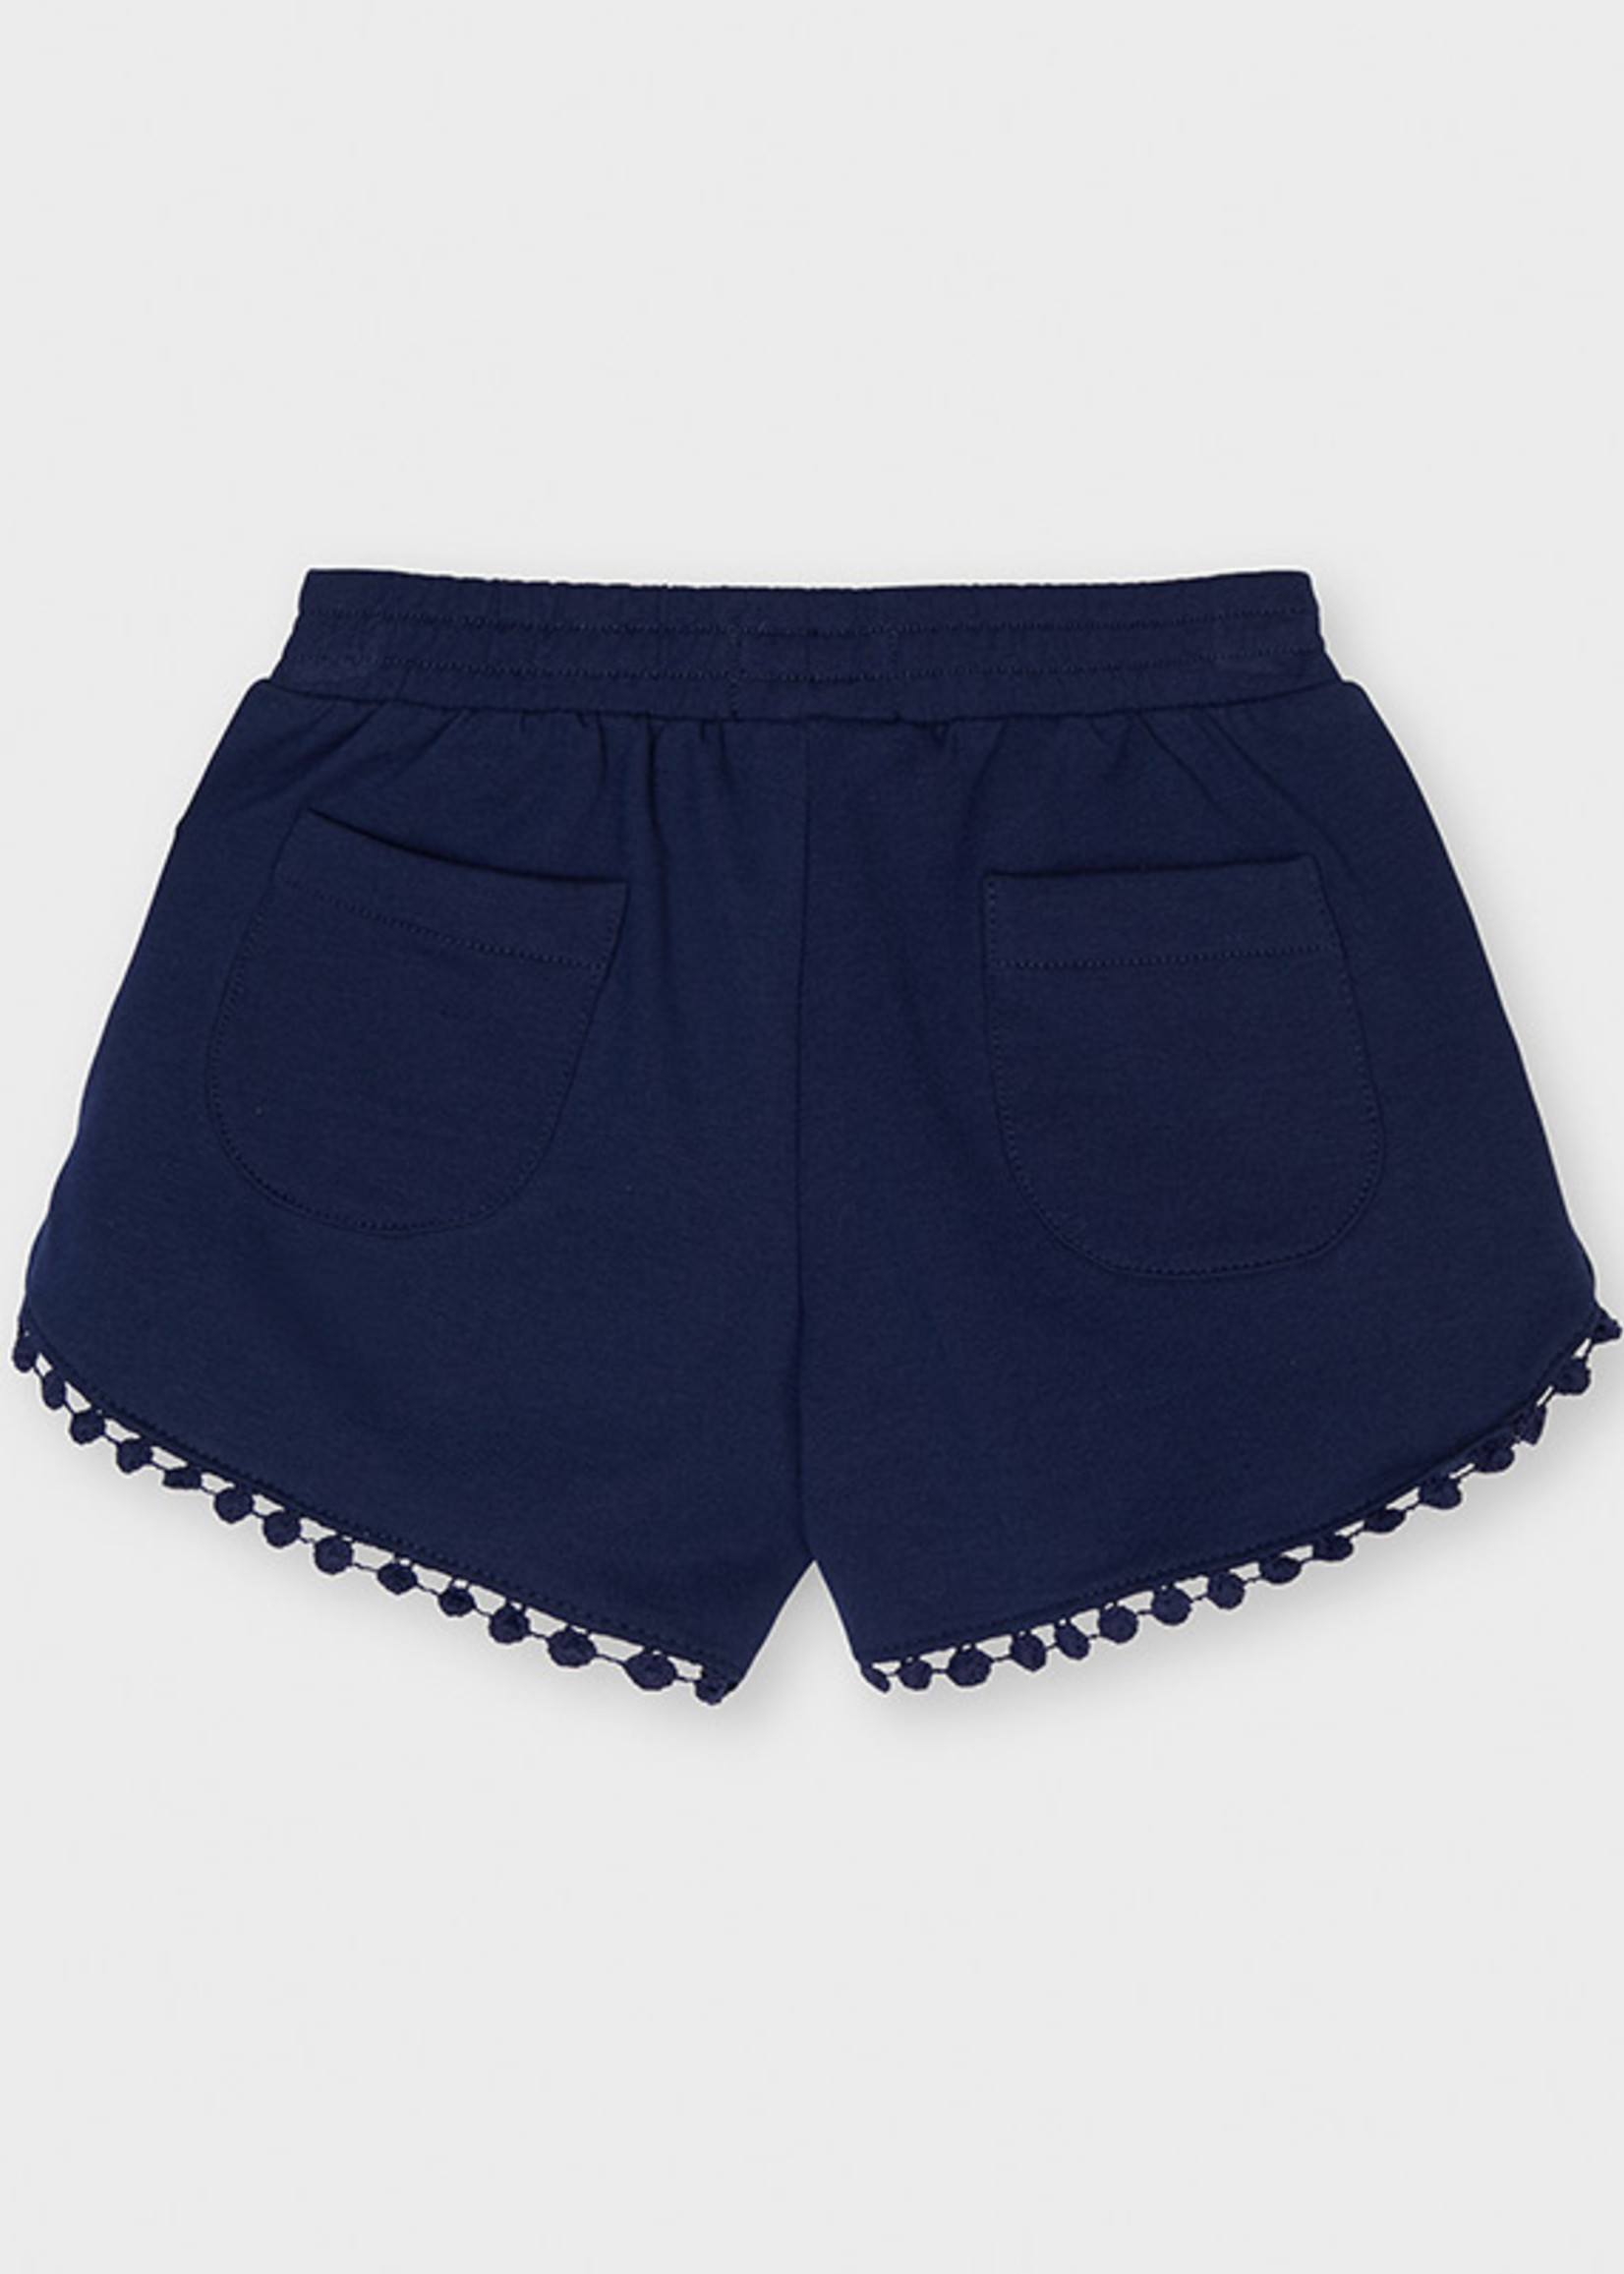 Mayoral Mayoral Chenille shorts ink